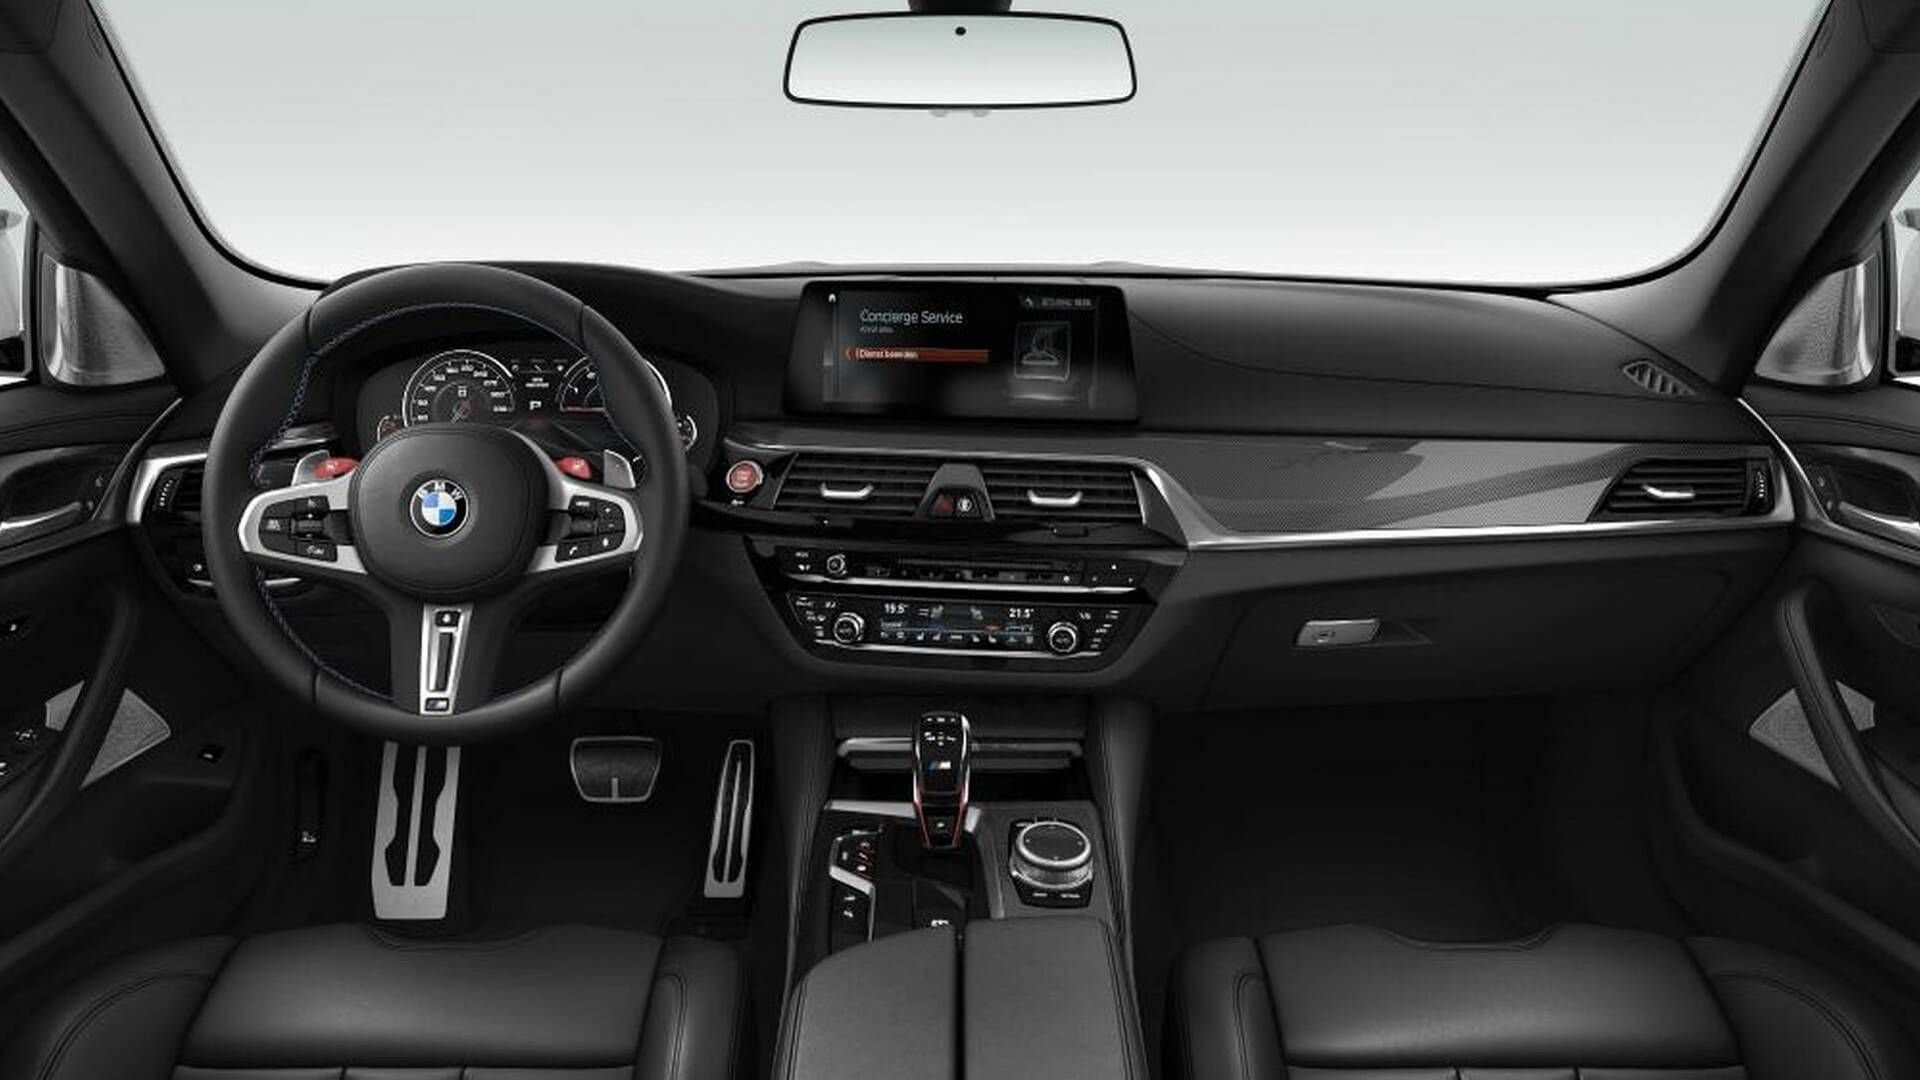 bmw-m5-with-the-competition-package-13.jpg